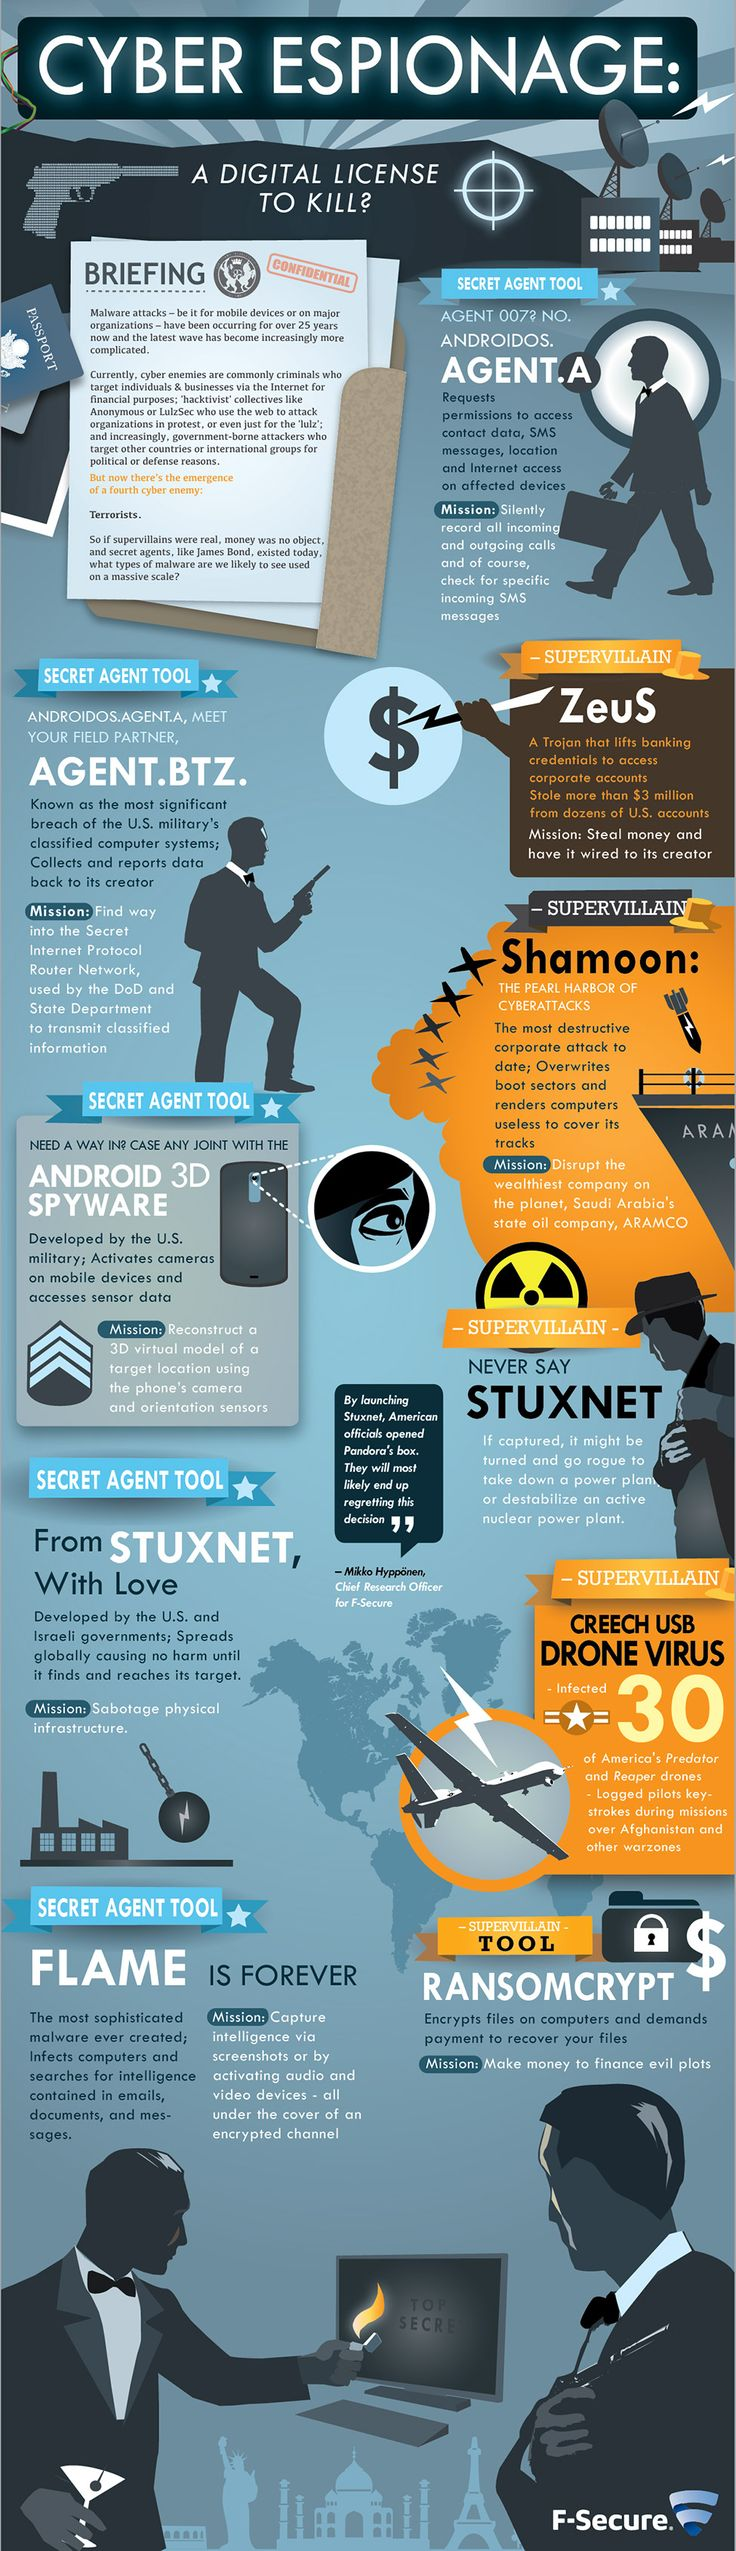 James Bond Malware infographic